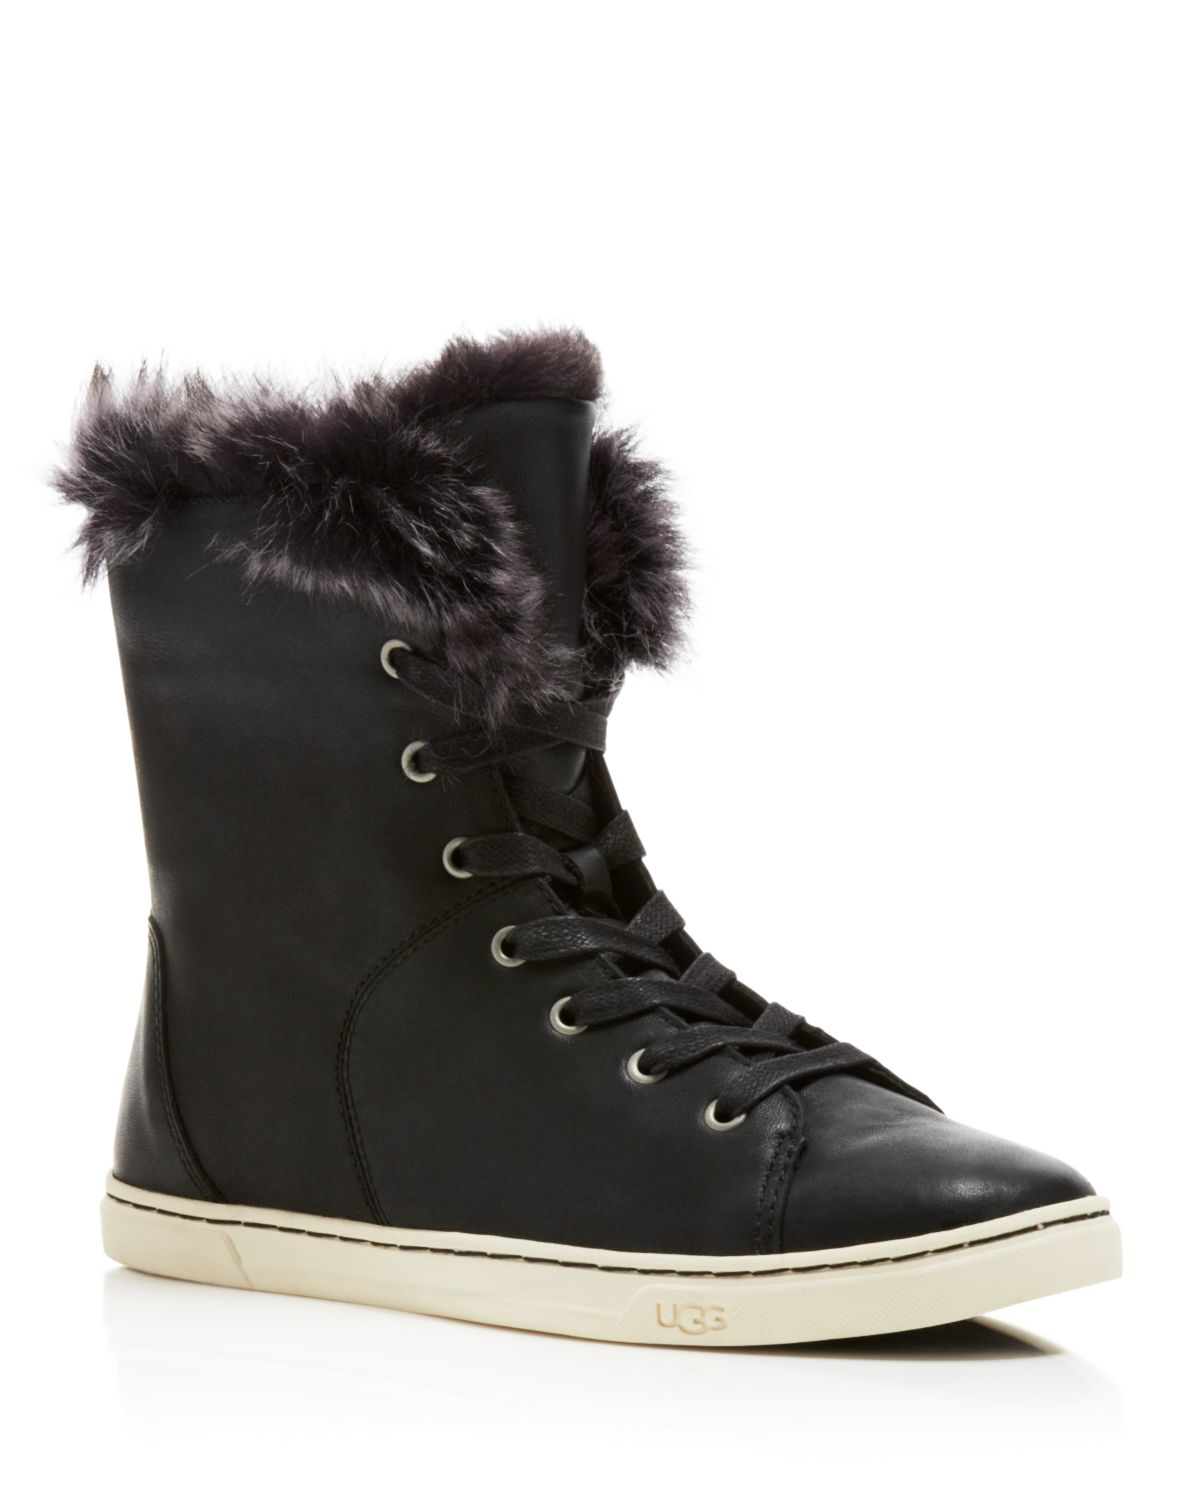 Ugg Croft High-top Sneaker in Black